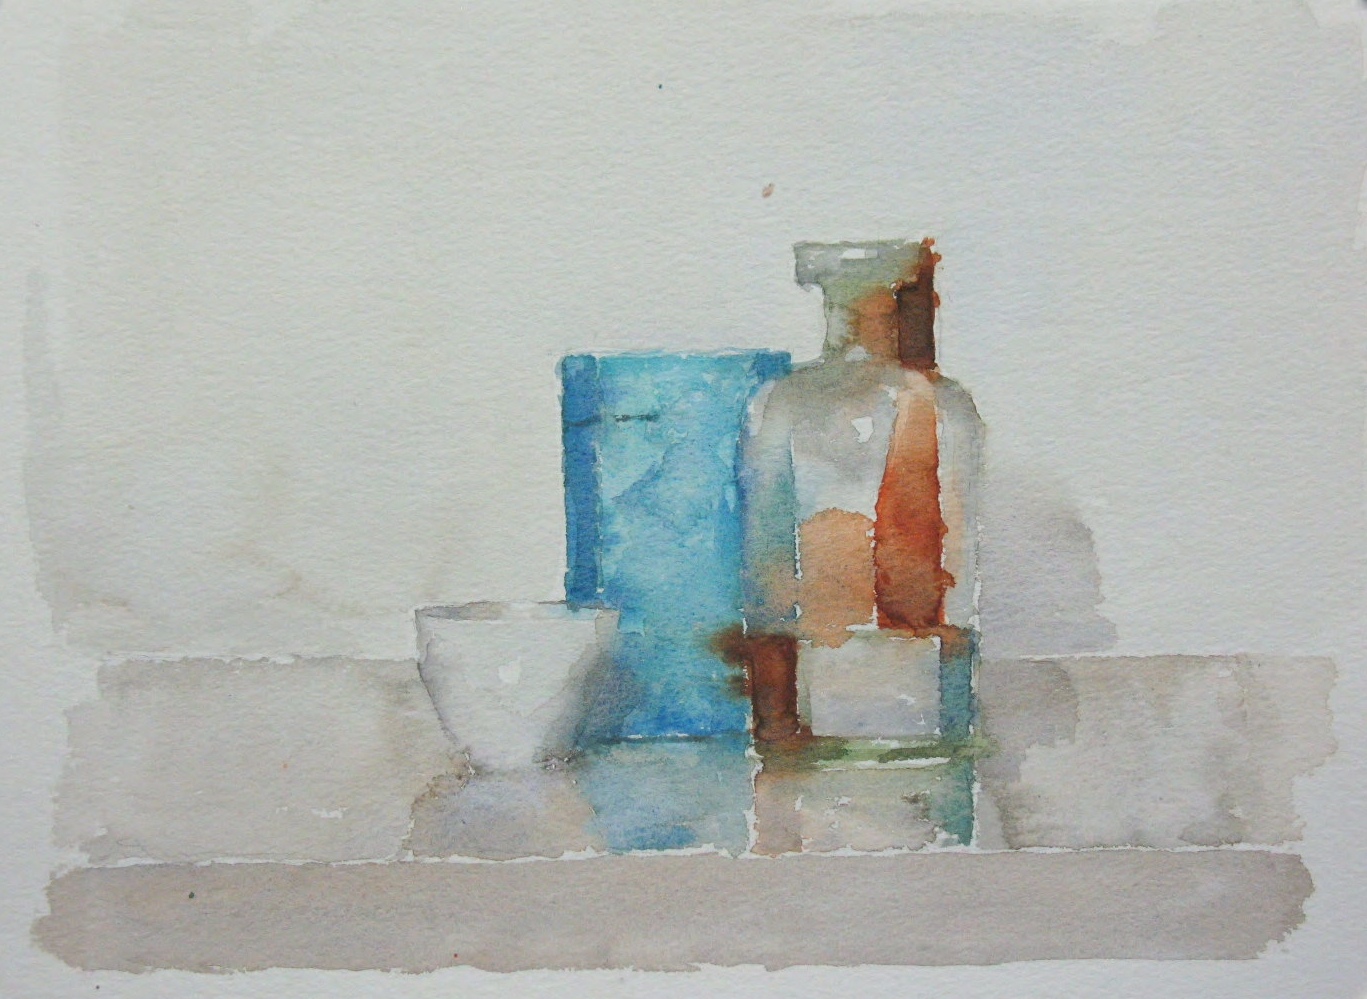 WCSL111, 2010, water colour on paper, 38 x 29cm.